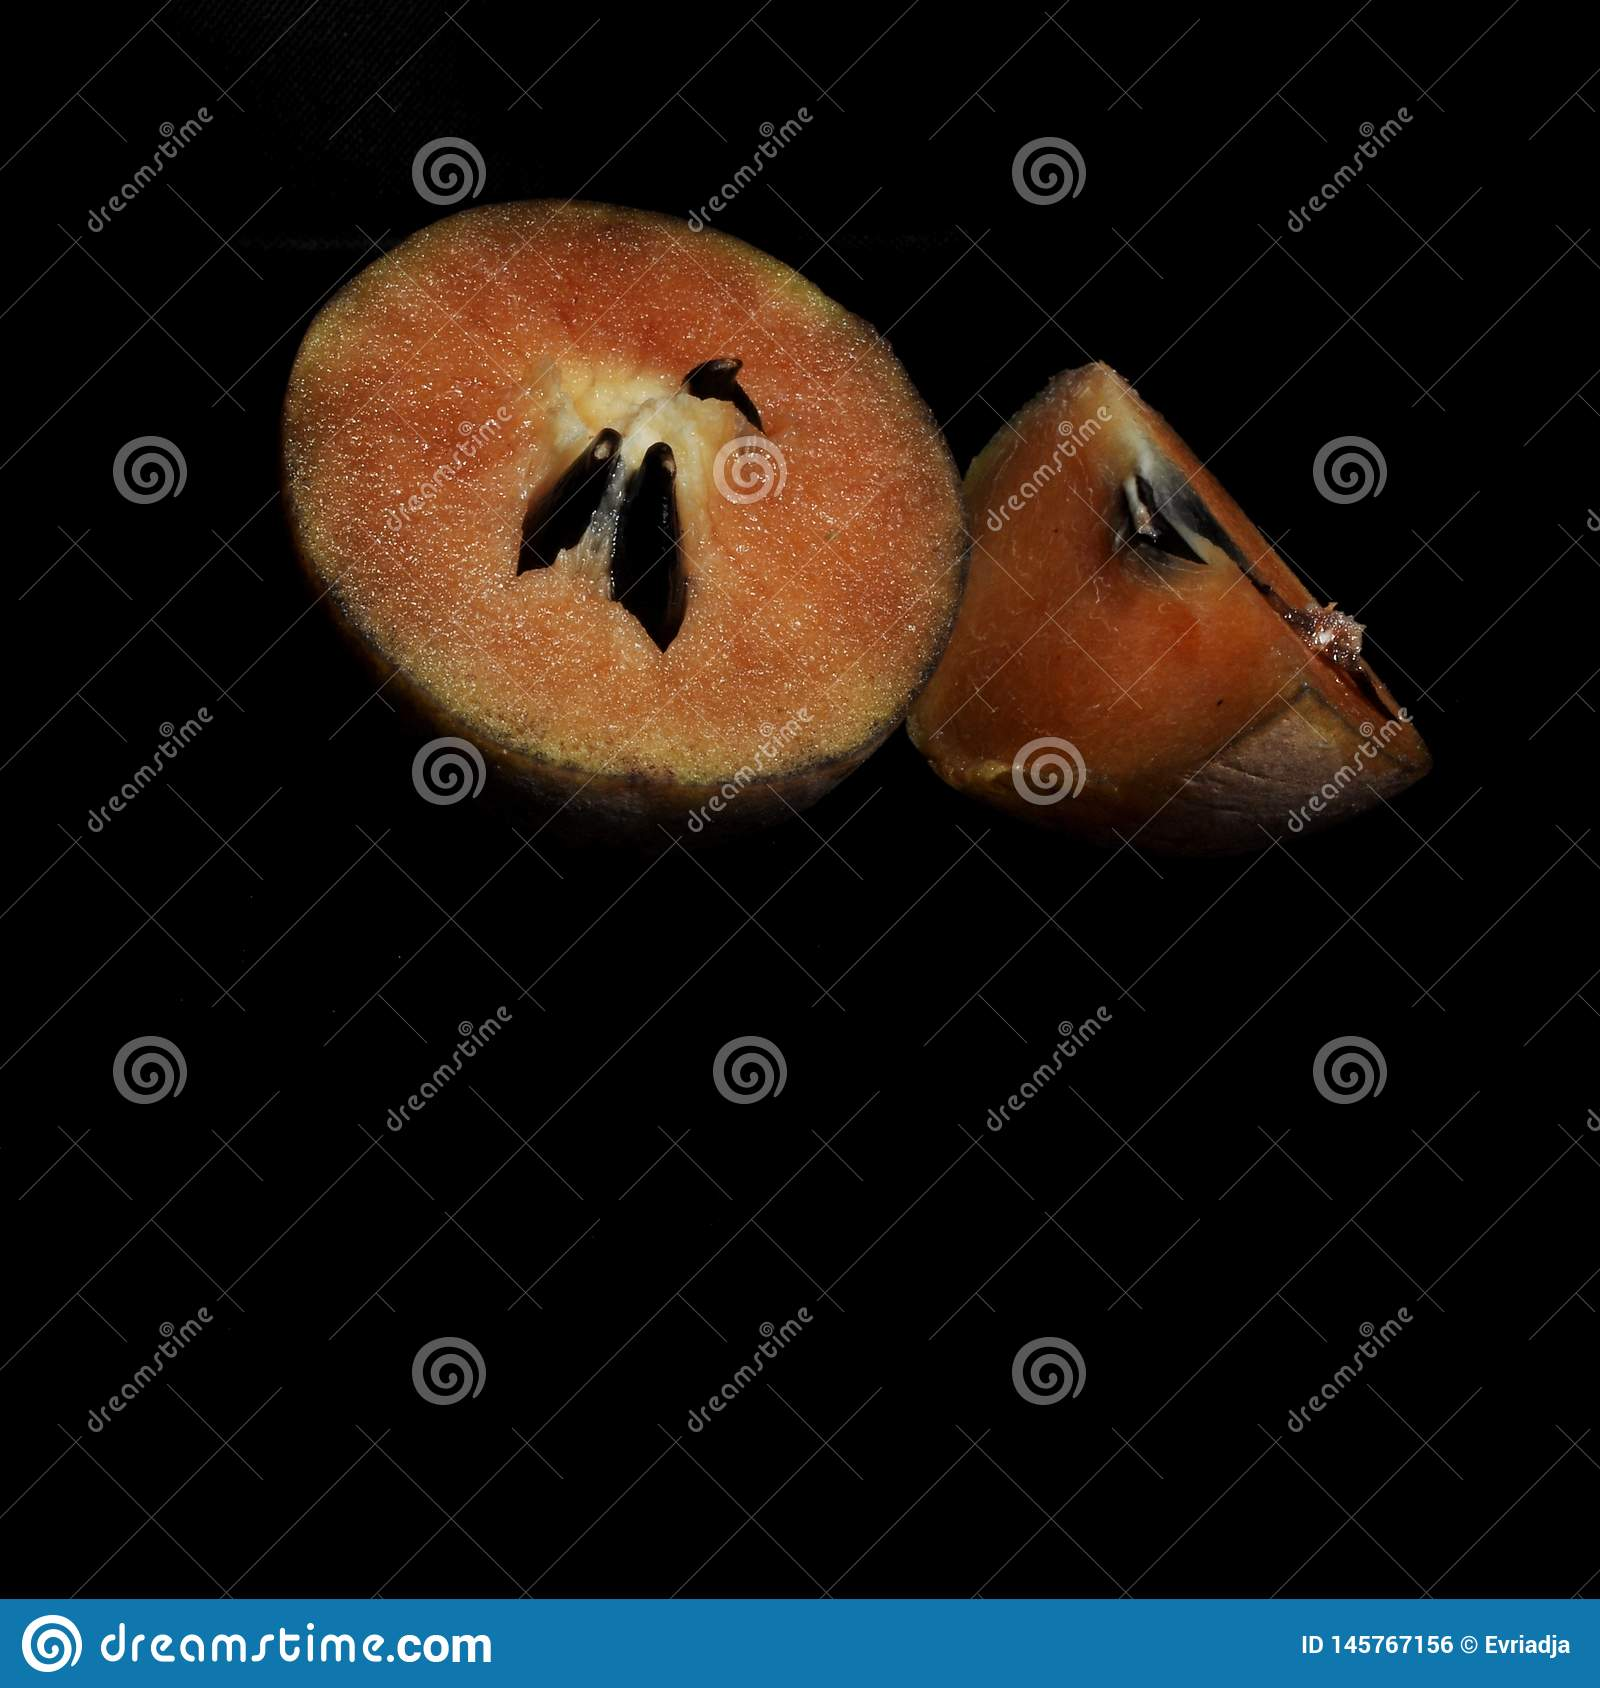 Sapodilla fruit isolated on black background